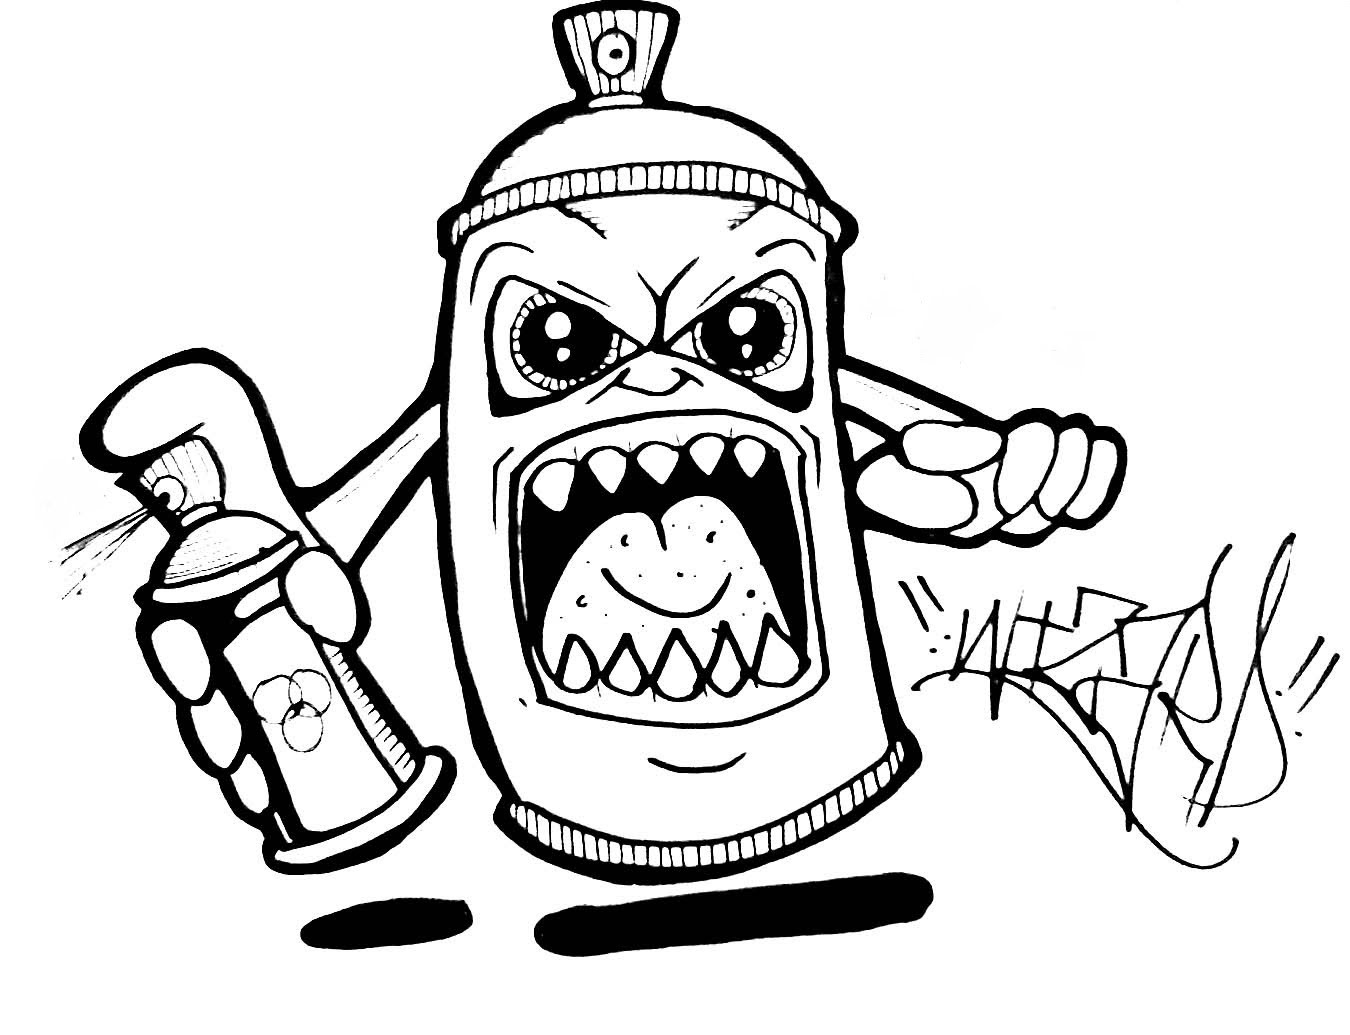 1350x1035 Drawing Evil Spray Can Drawing Also Graffiti Spray Can Drawing